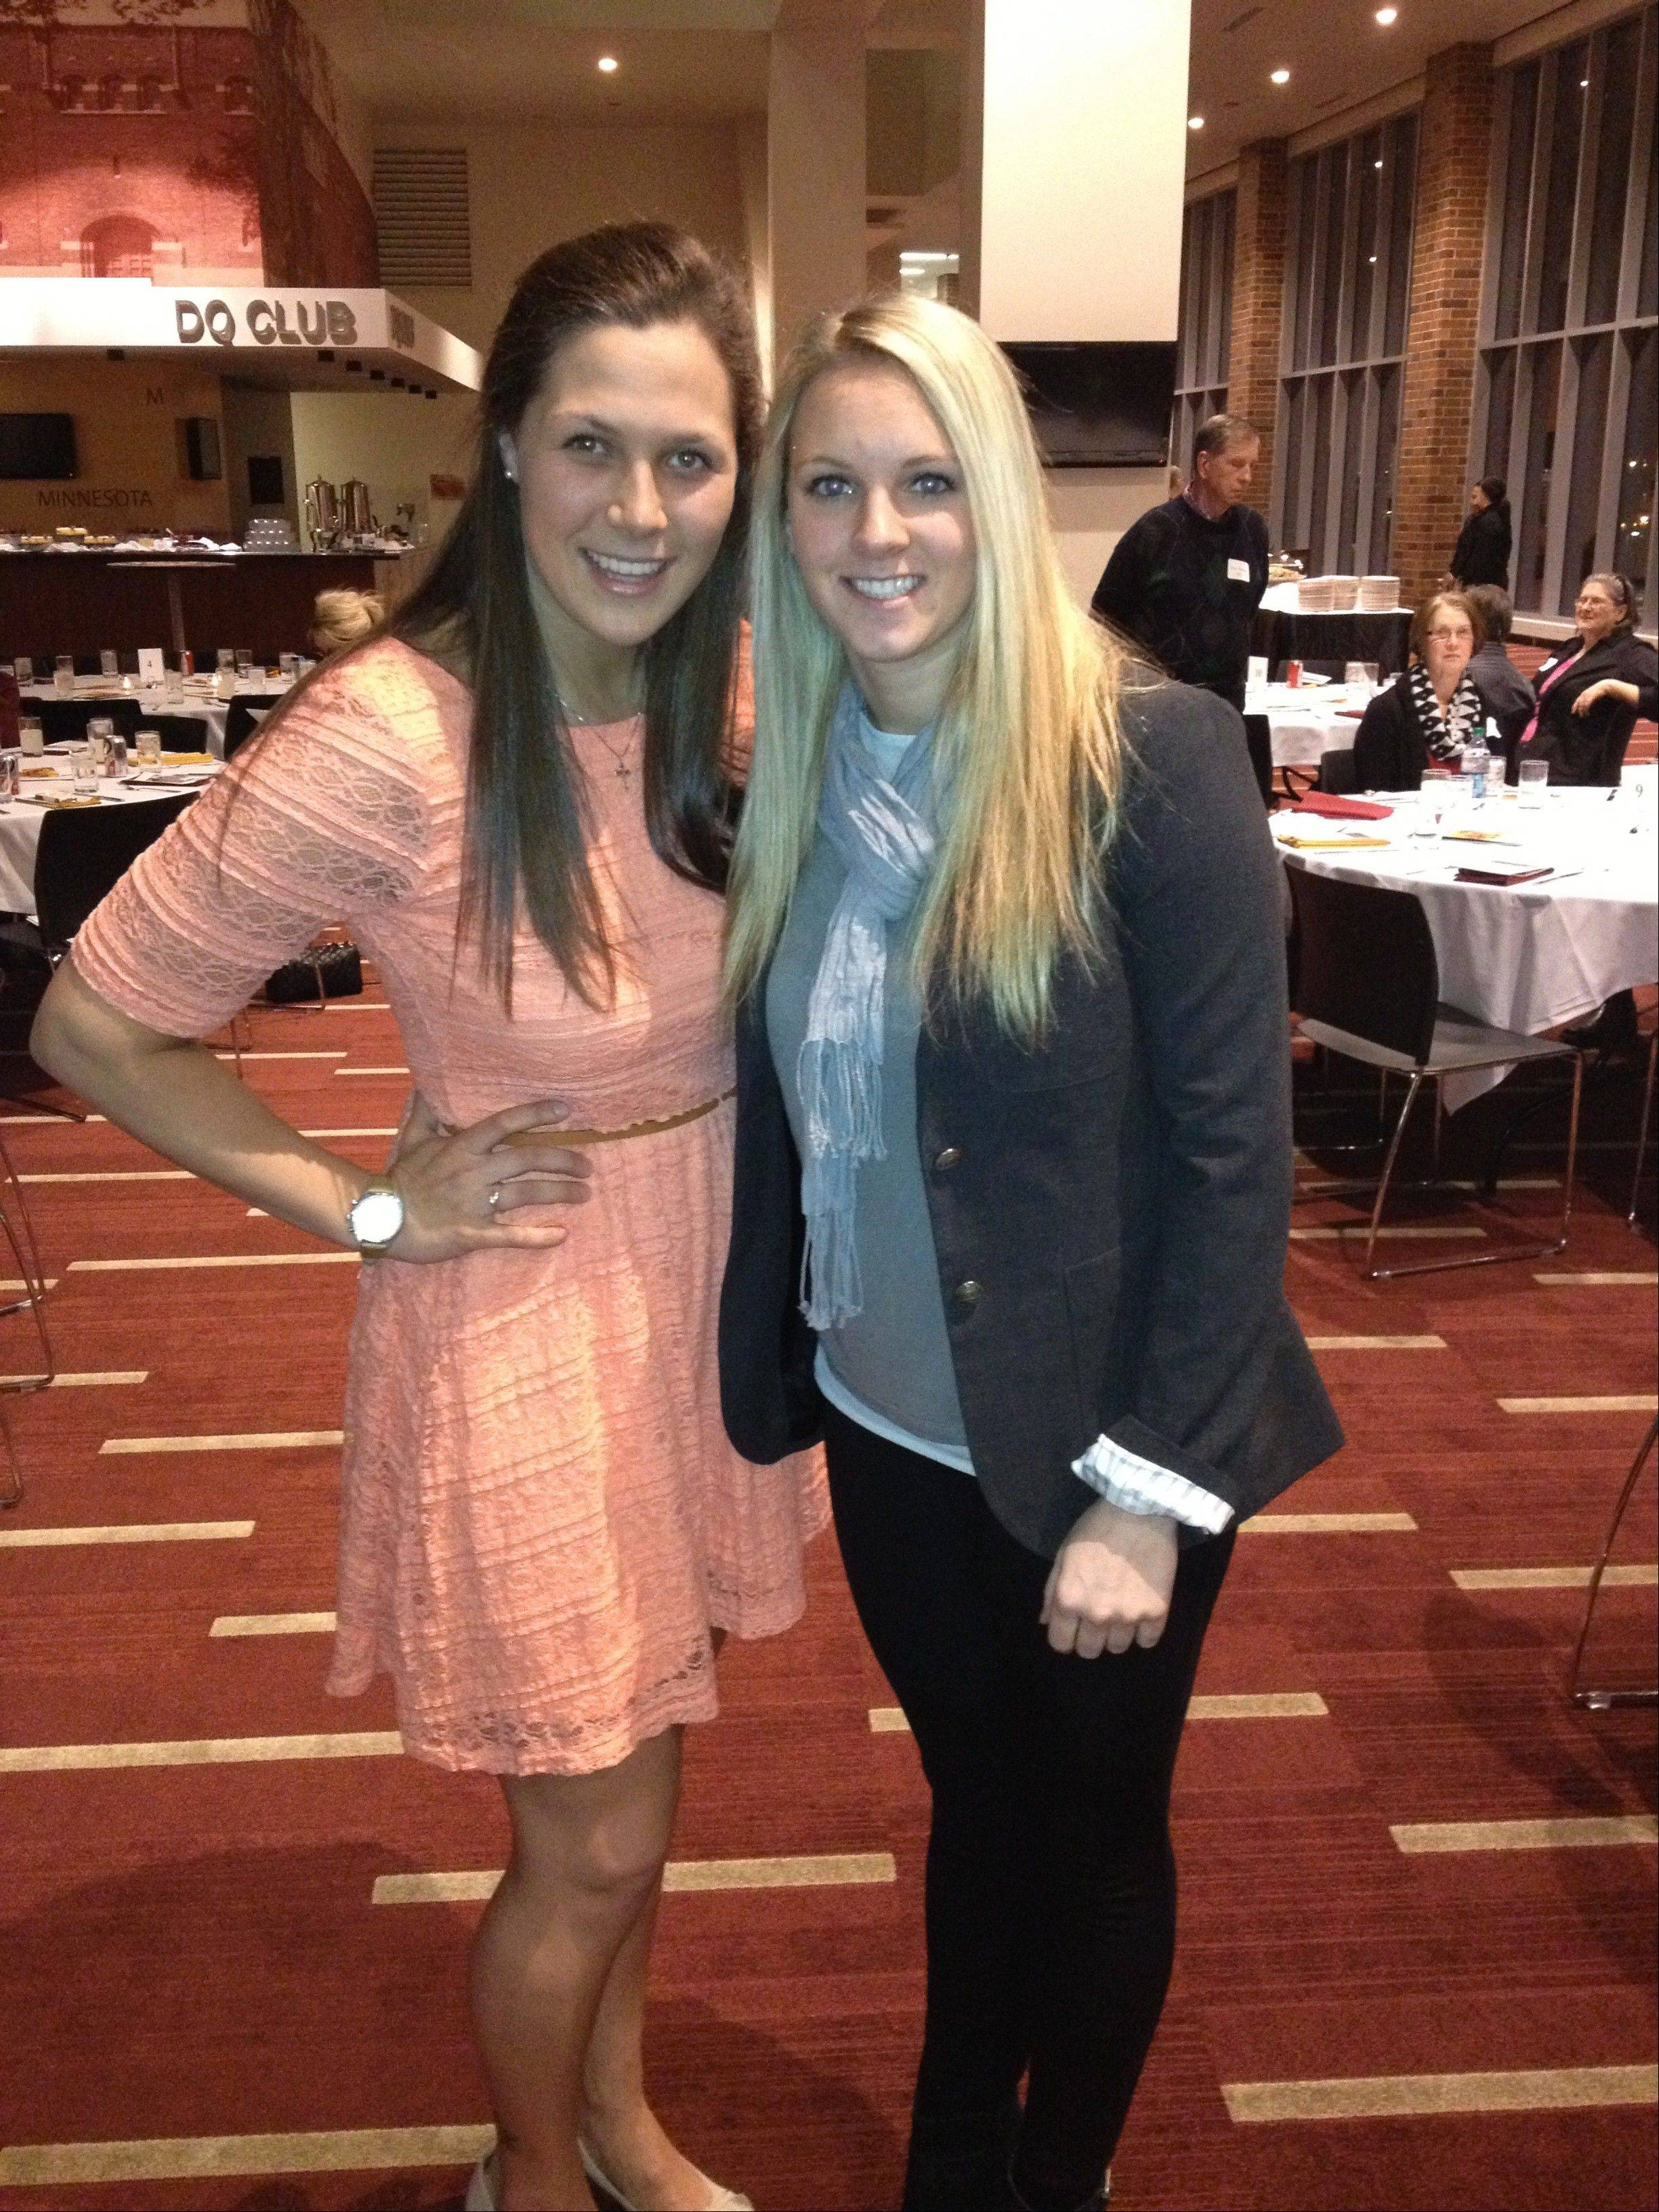 Buffalo Grove native Megan Bozek, left, is co-captain of the undefeated University of Minnesota women's ice hockey team. Here she stands with teammate Amanda Kessel at the team's senior banquet.